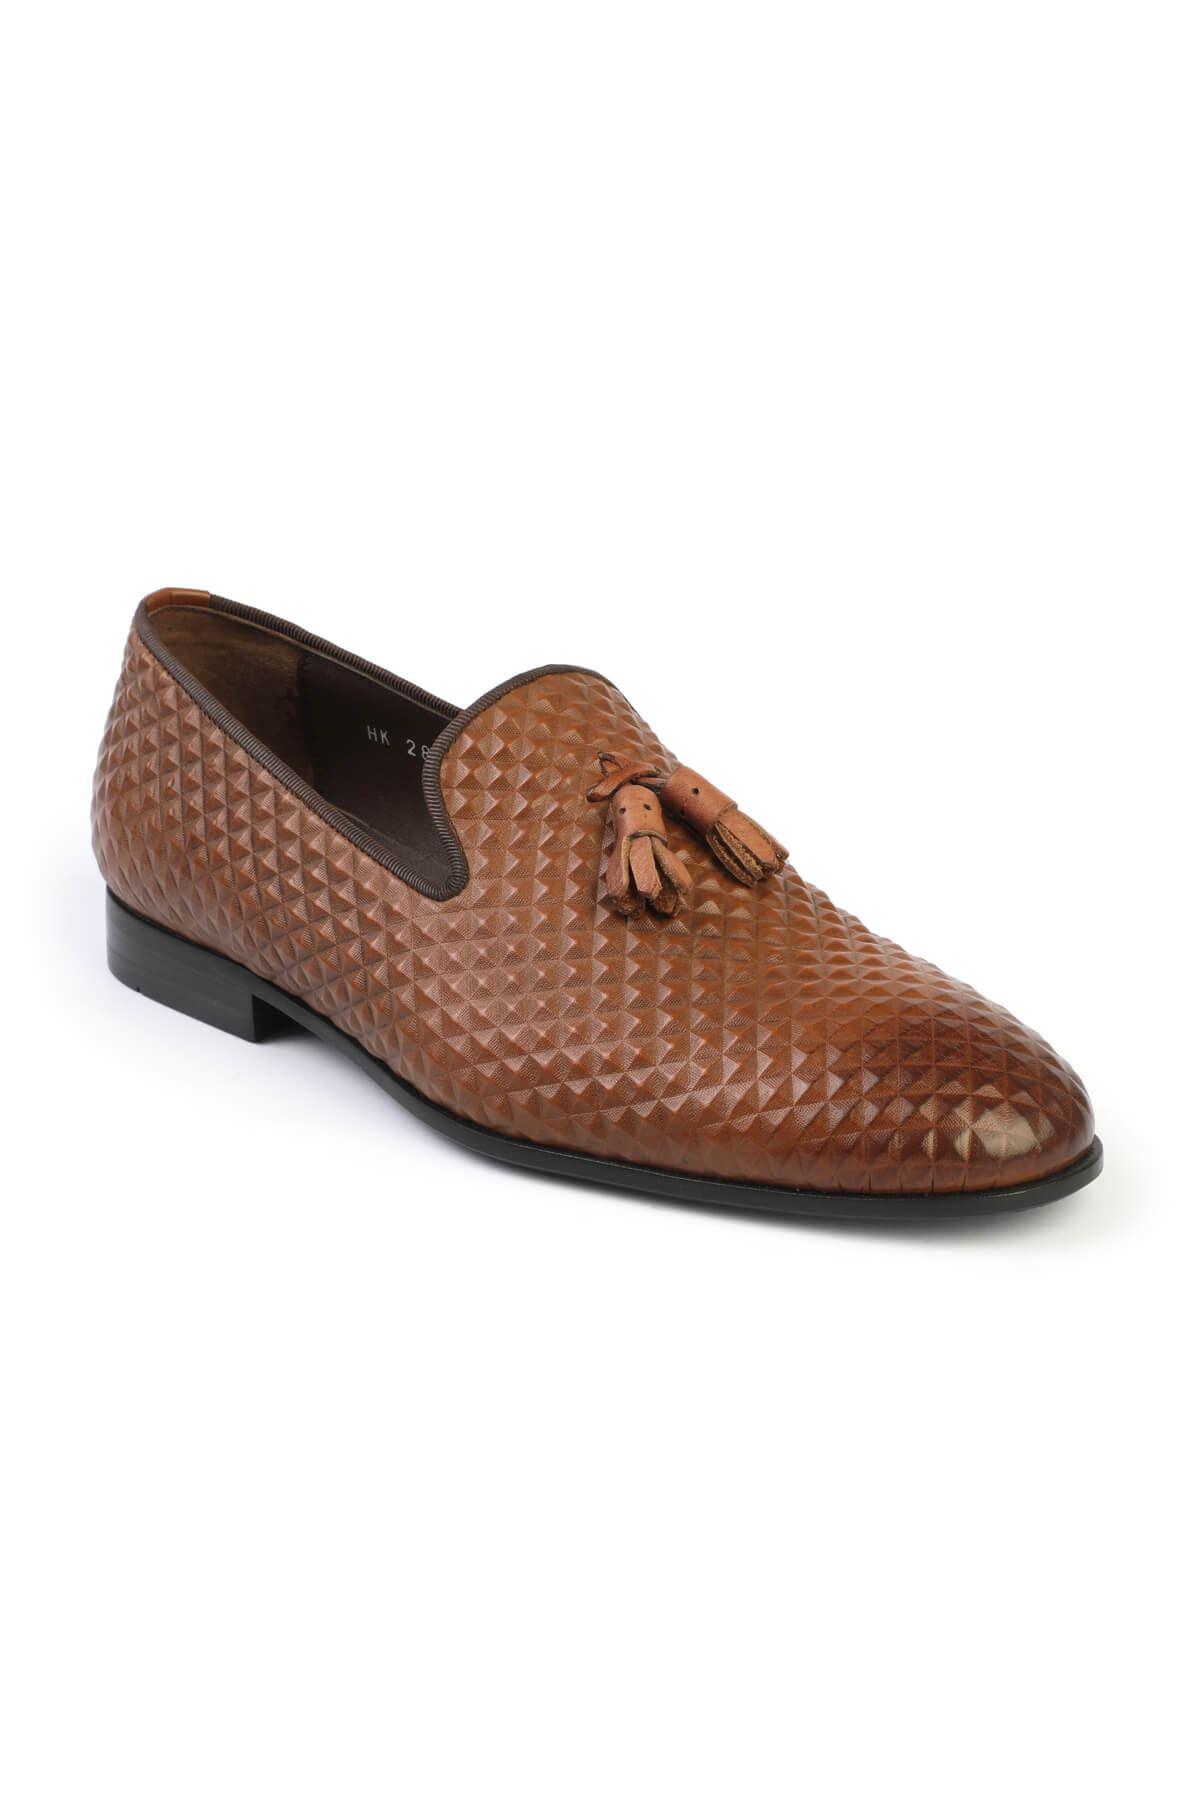 Libero 2830 Tan Loafer Shoes